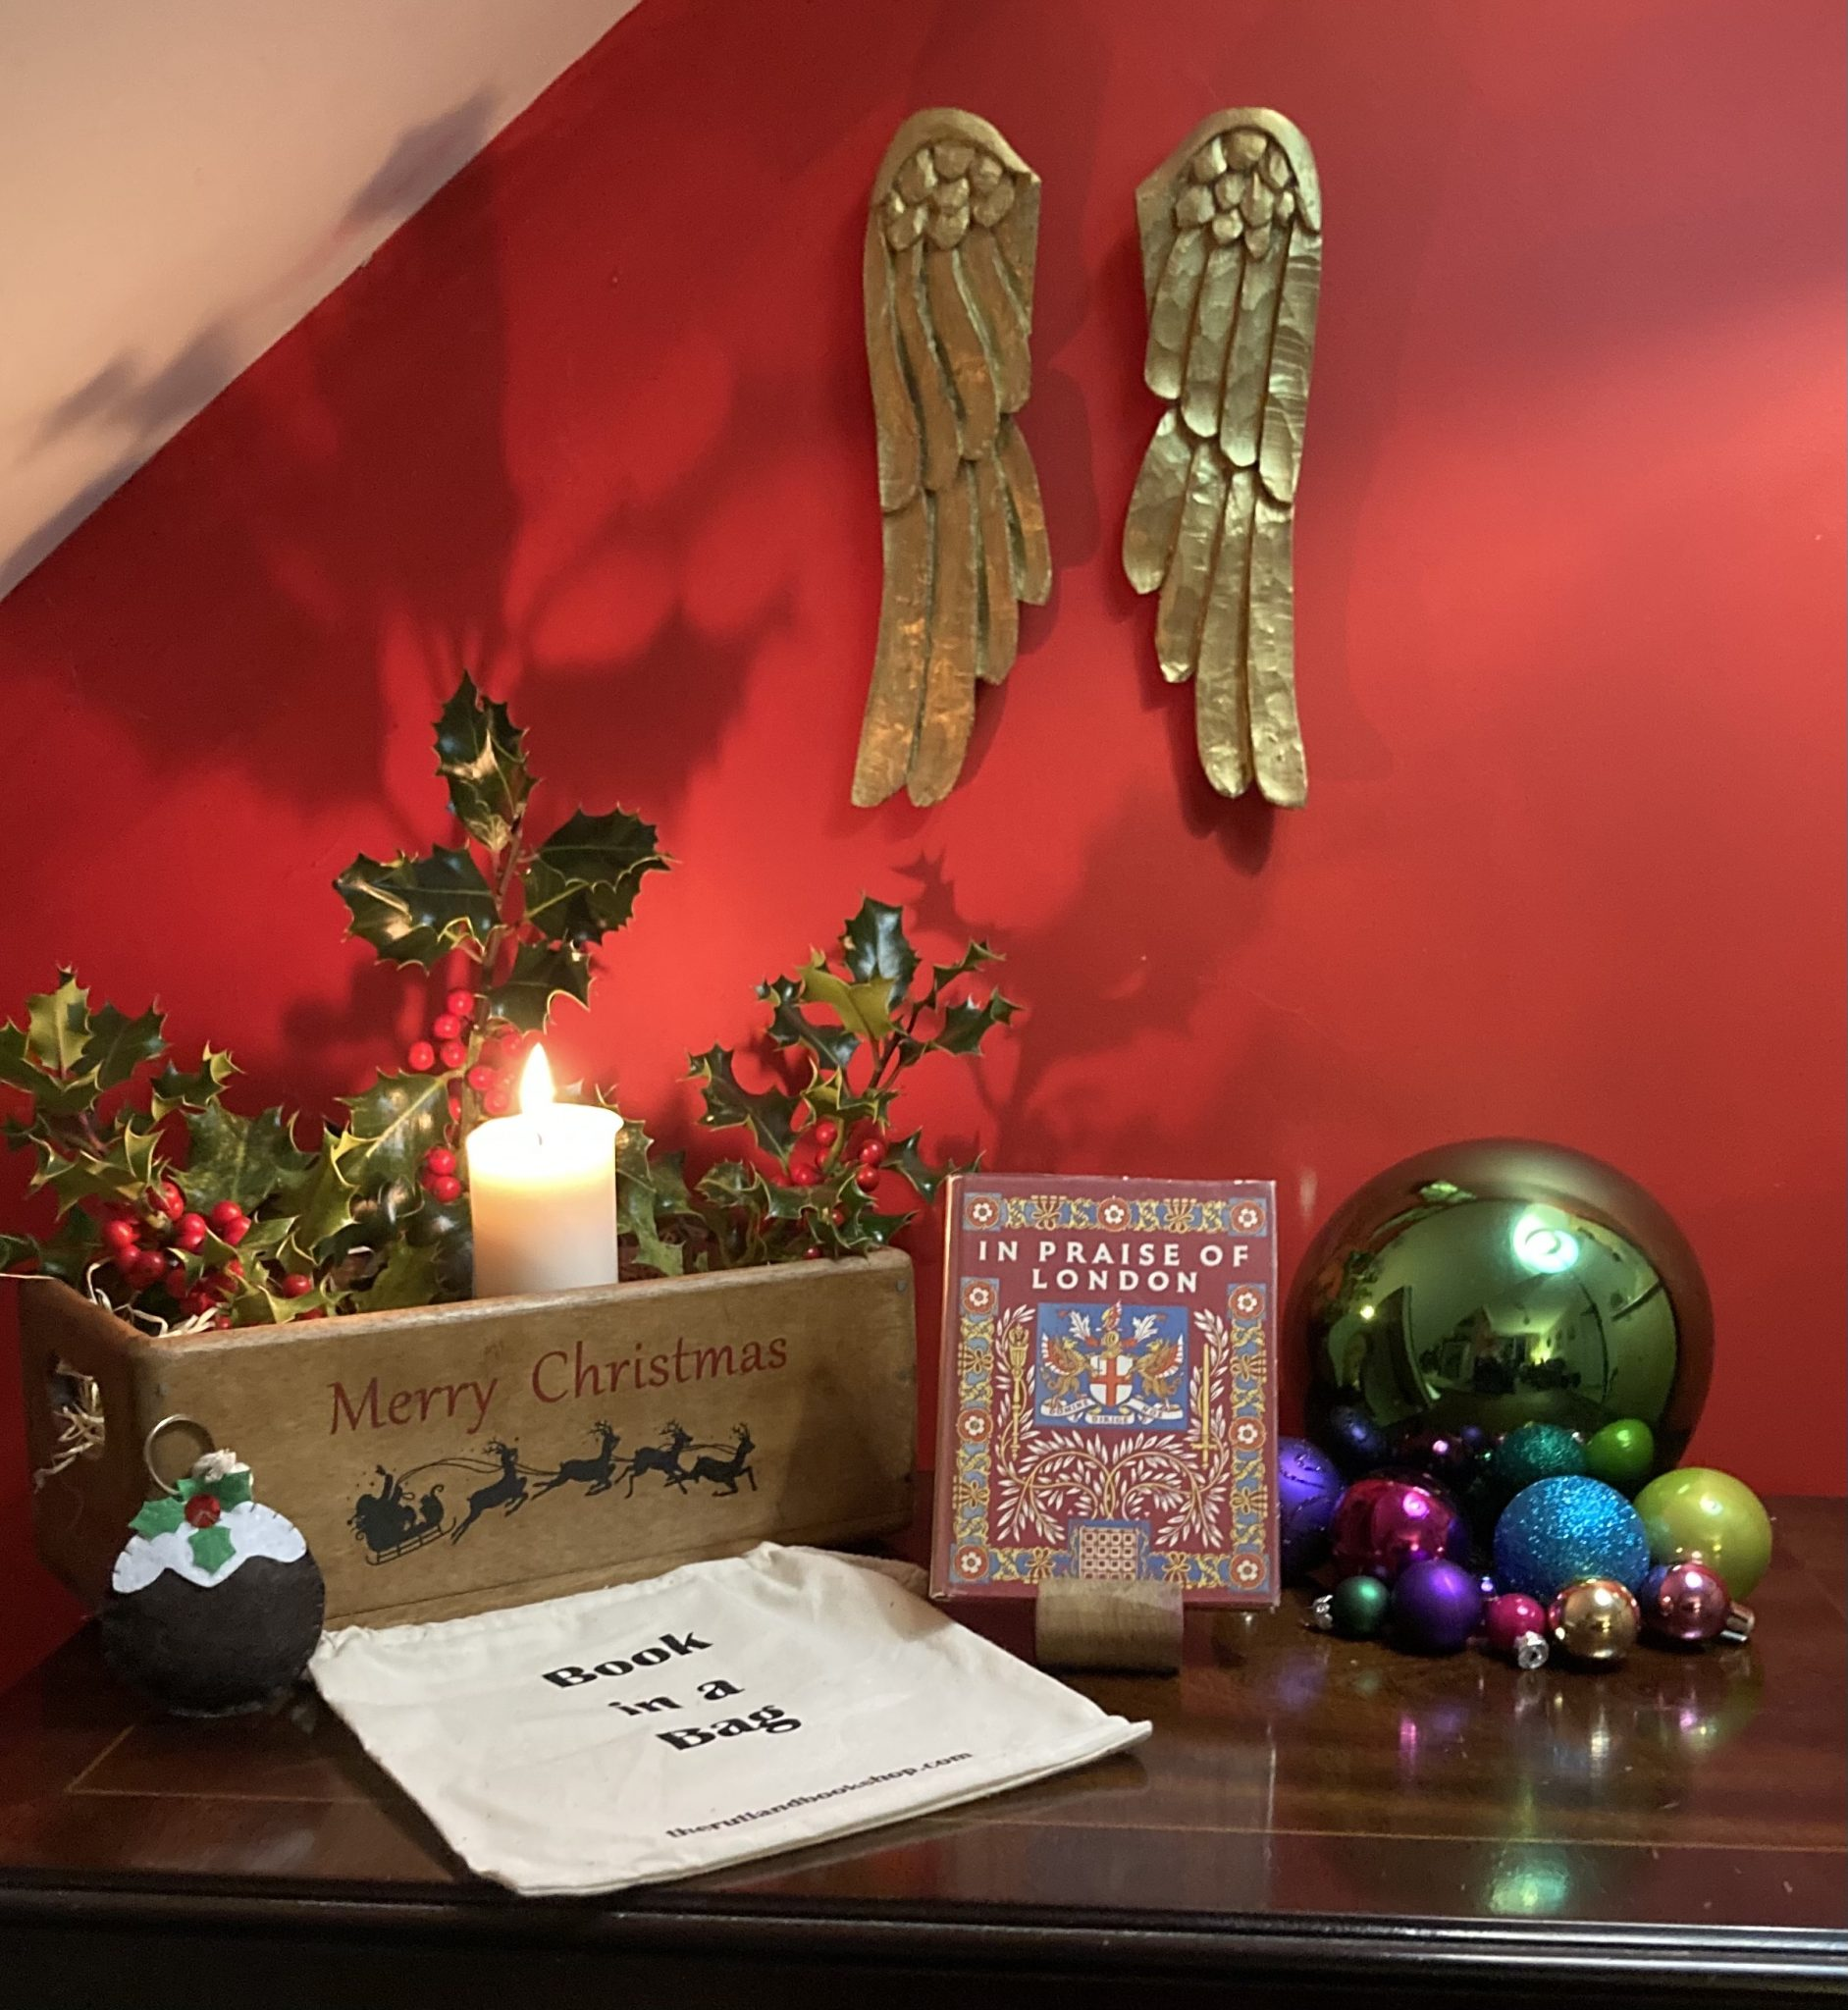 Christmas Book In A Bag: In Praise Of London